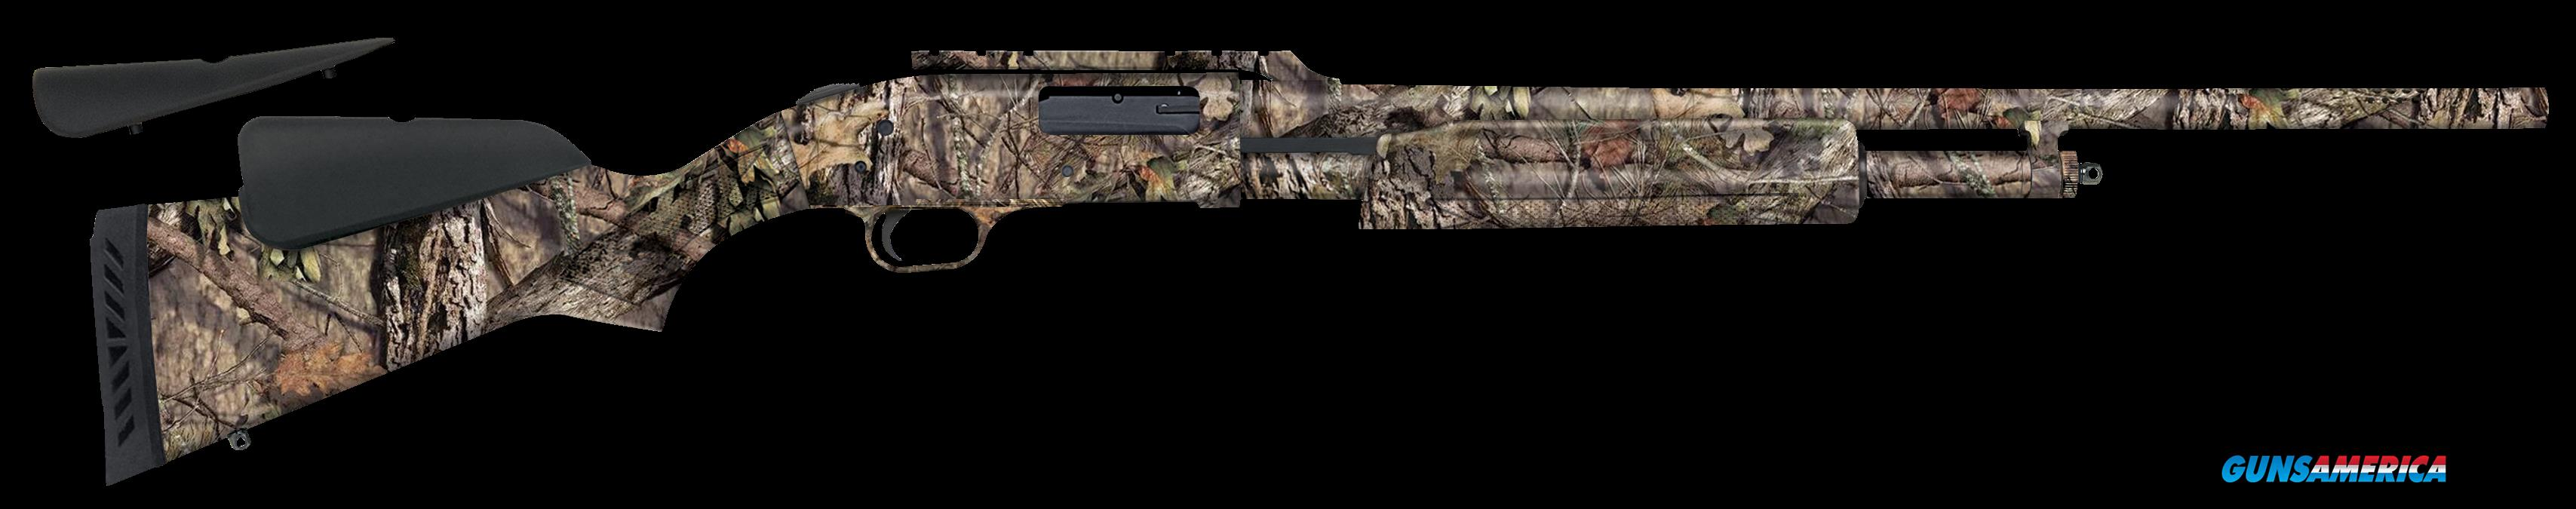 Mossberg 54314 500 Pump 20ga 24 3 Wood Stk Mossy Oak Break Up